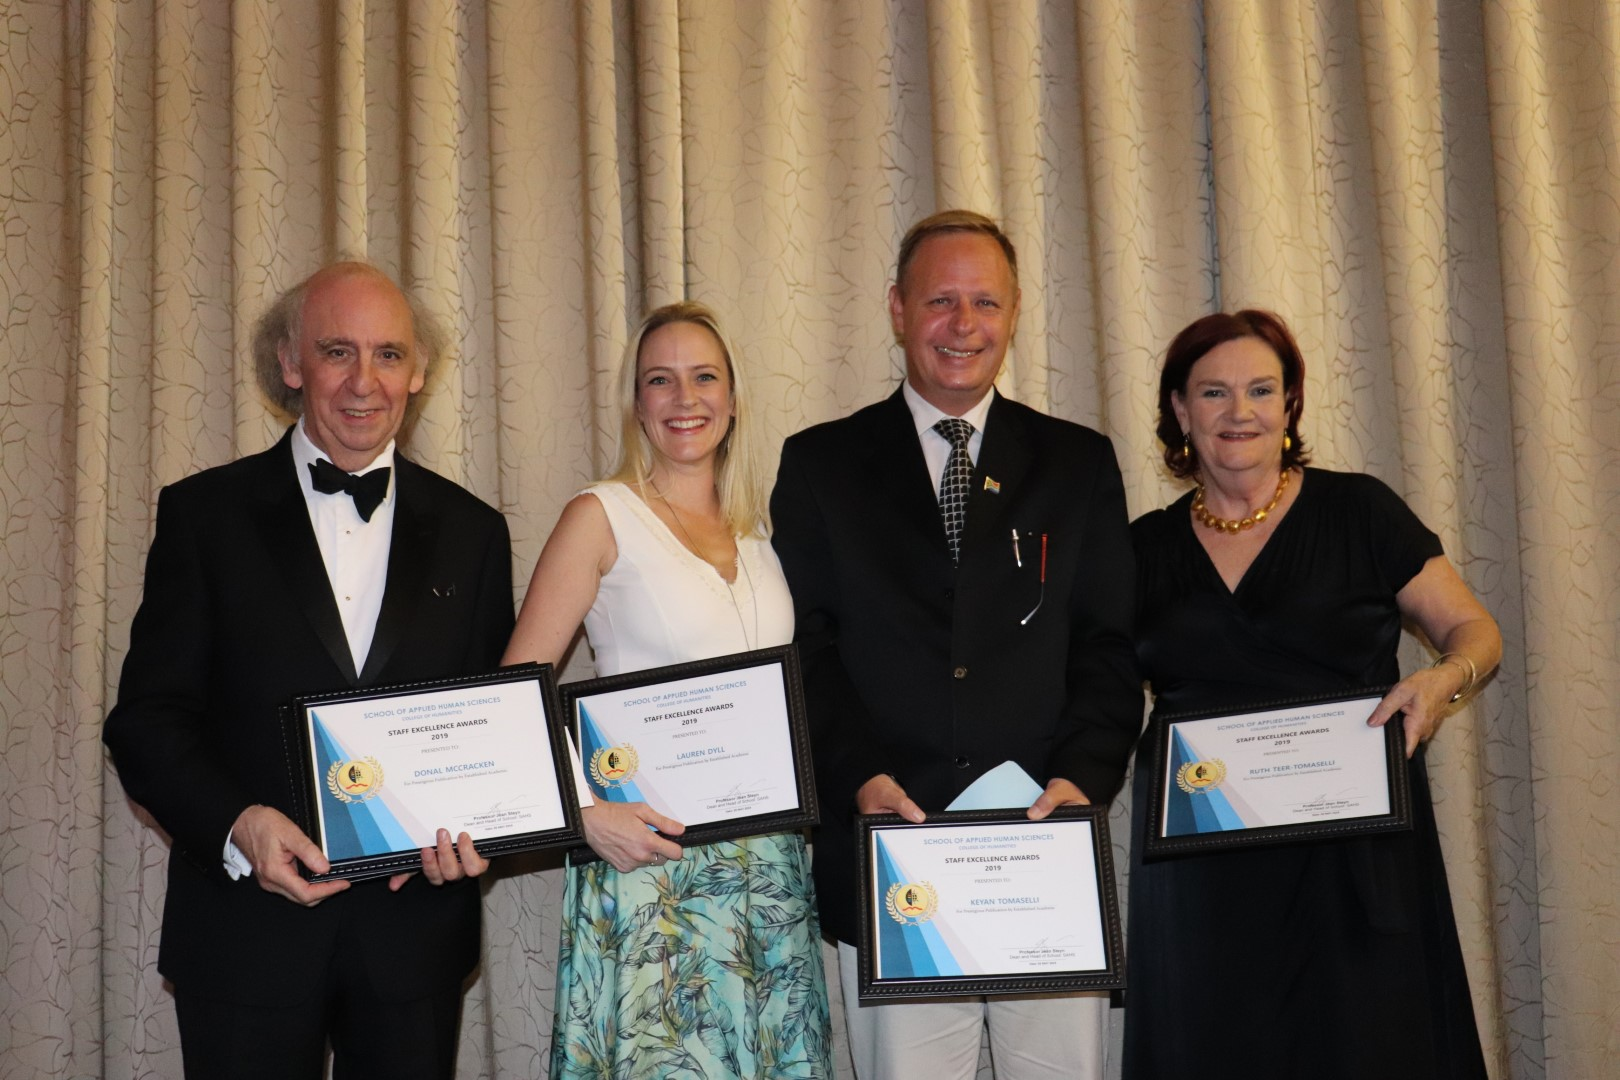 Highlights from the School of Applied Human Sciences staff awards